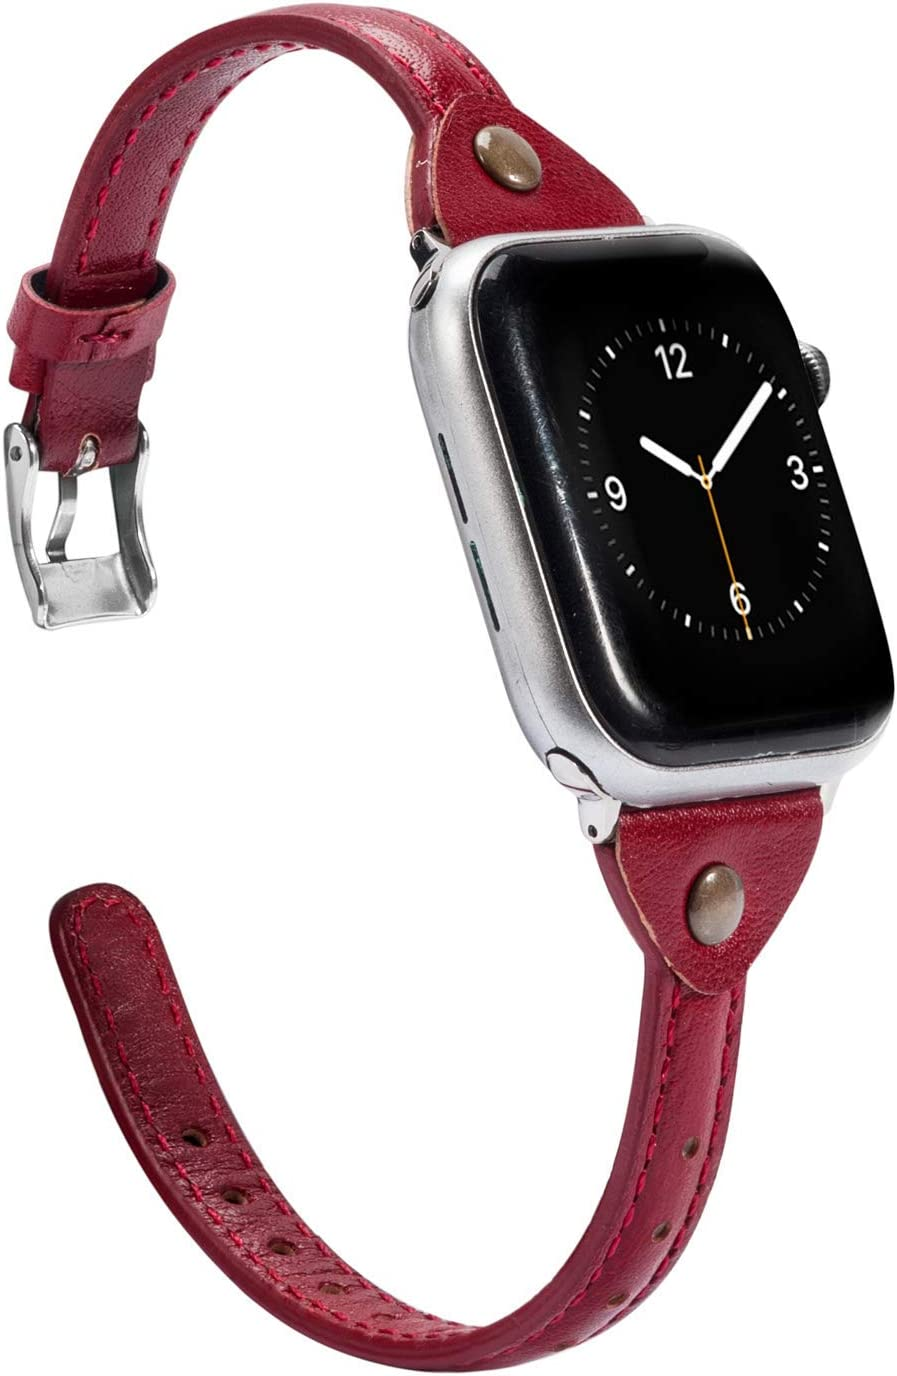 Wearlizer Deep Red Leather Compatible with Apple Watch Slim Leather Band 42mm 44mm for iWatch SE Womens Mens Strap Wristband Leisure Unique Bracelet (Silver Metal Clasp) Series 6 5 4 3 2 1 Sport